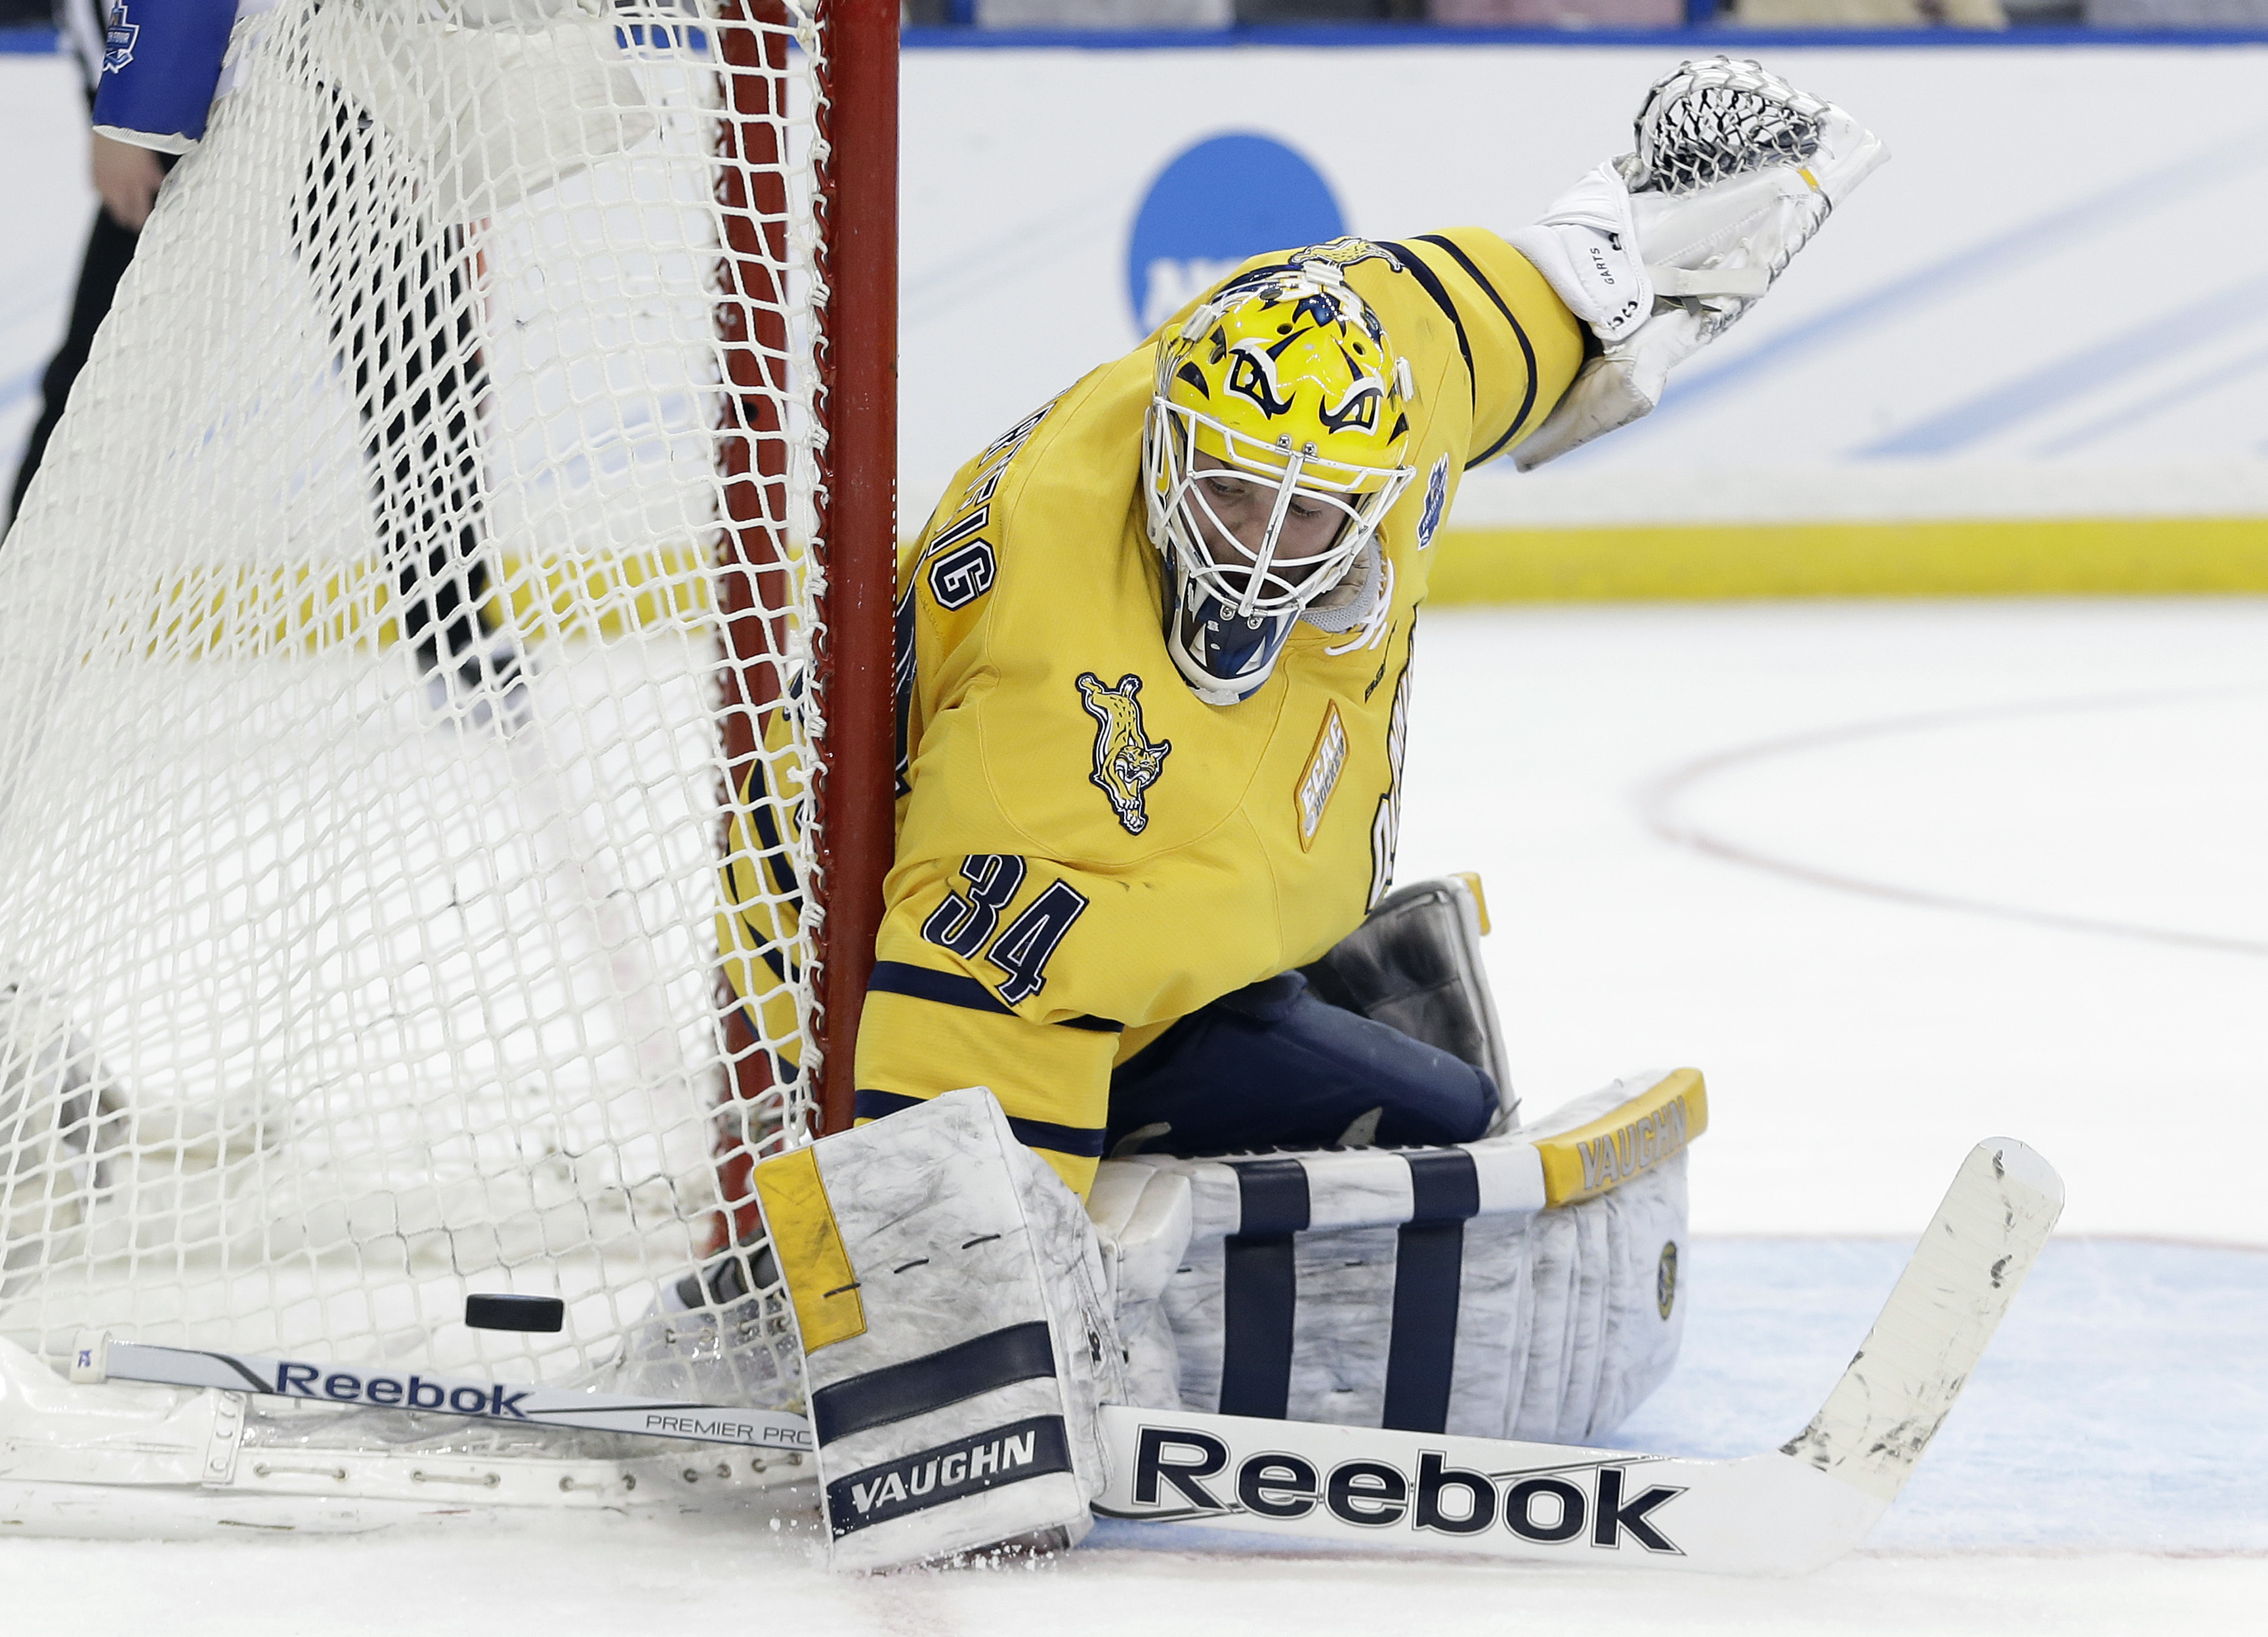 Quinnipiac goalie Michael Garteig makes a save on a shot by Boston College during the first period of an NCAA Frozen Four semifinal men's college hockey game Thursday, April 7, 2016, in Tampa, Fla. (AP Photo/Chris O'Meara)